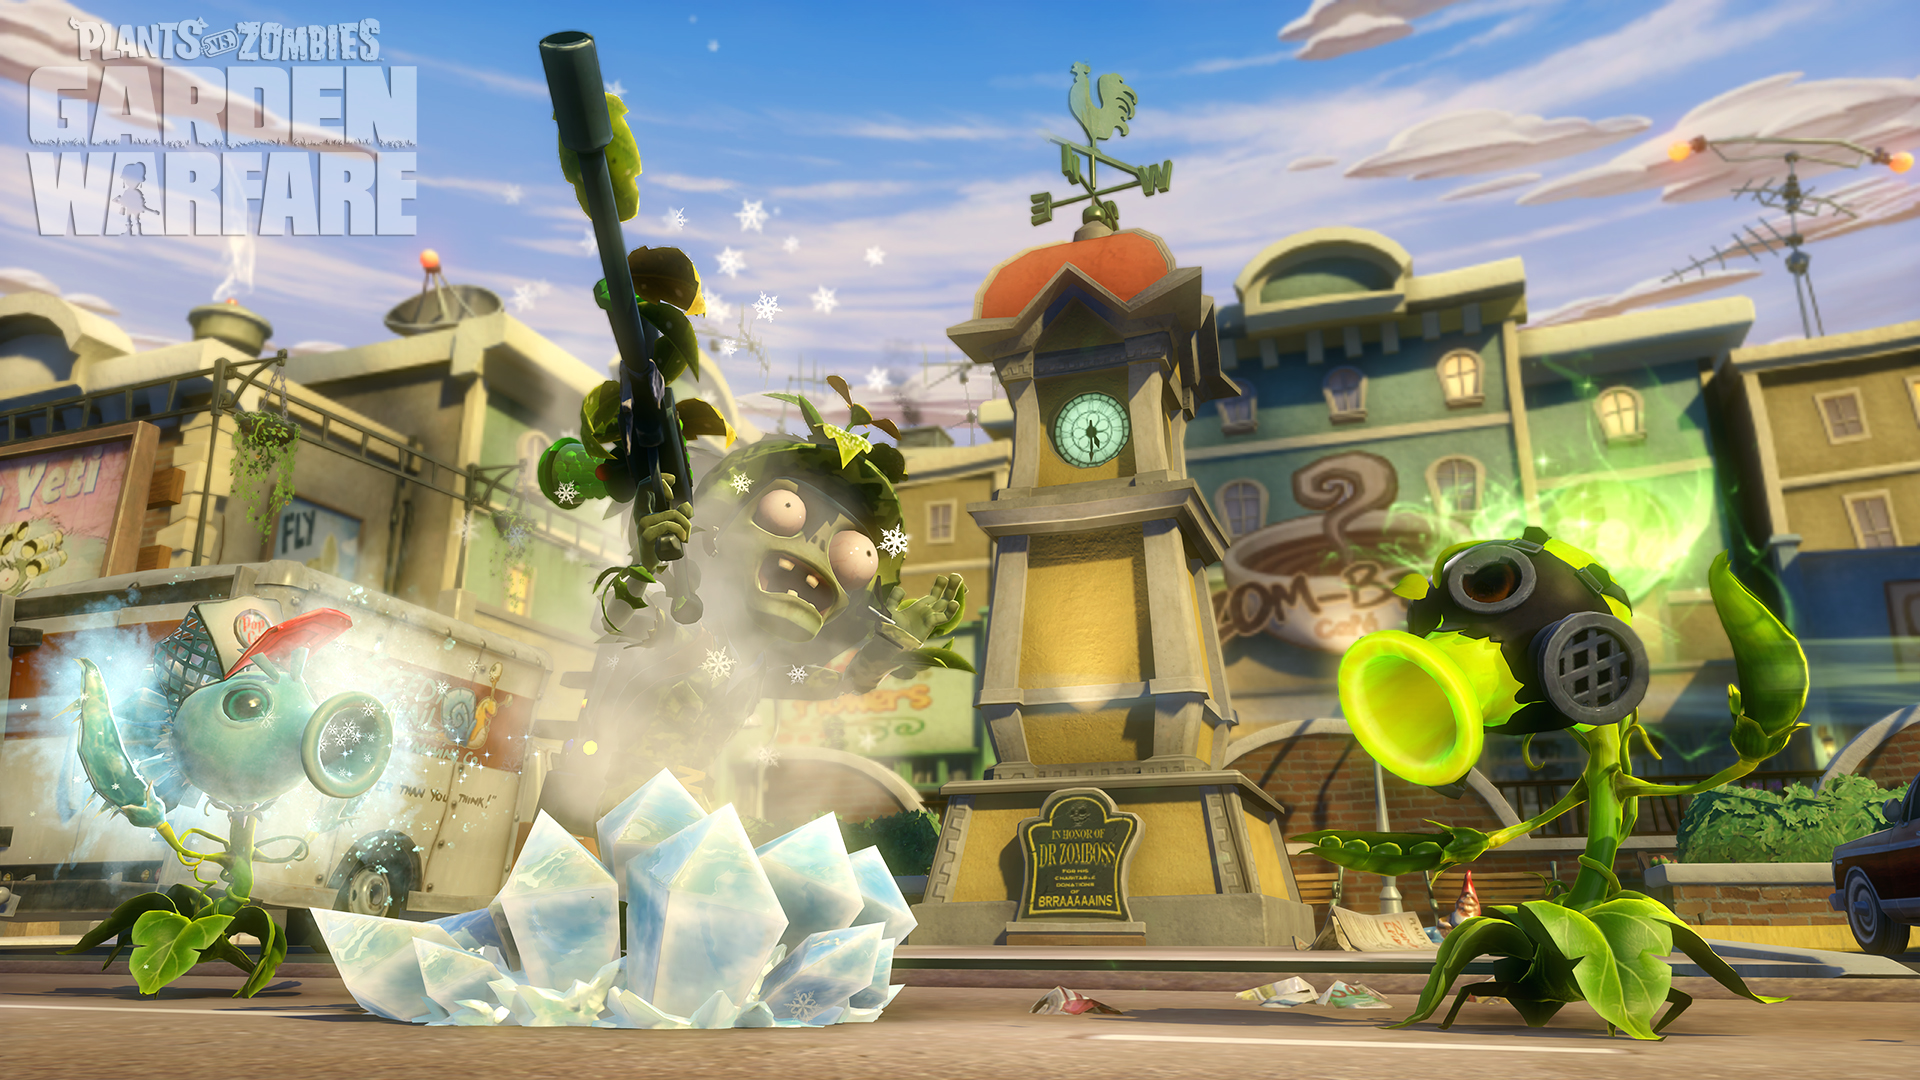 Plants Vs. Zombies Garden Warfare Release Date